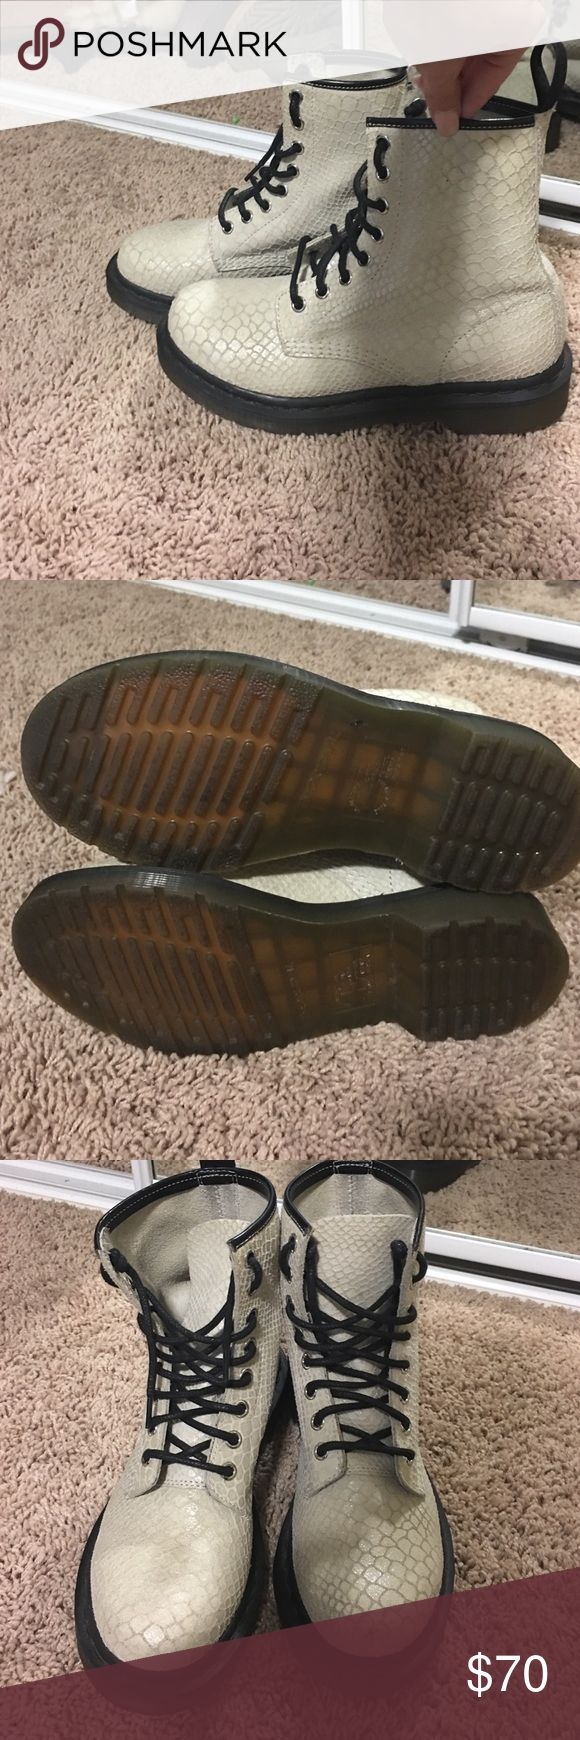 Dr Martens Women's snakeskin Dr. Martens! still really good condition, only worn a few times! Size: 6 these are off-white/cream colored Dr. Martens Shoes